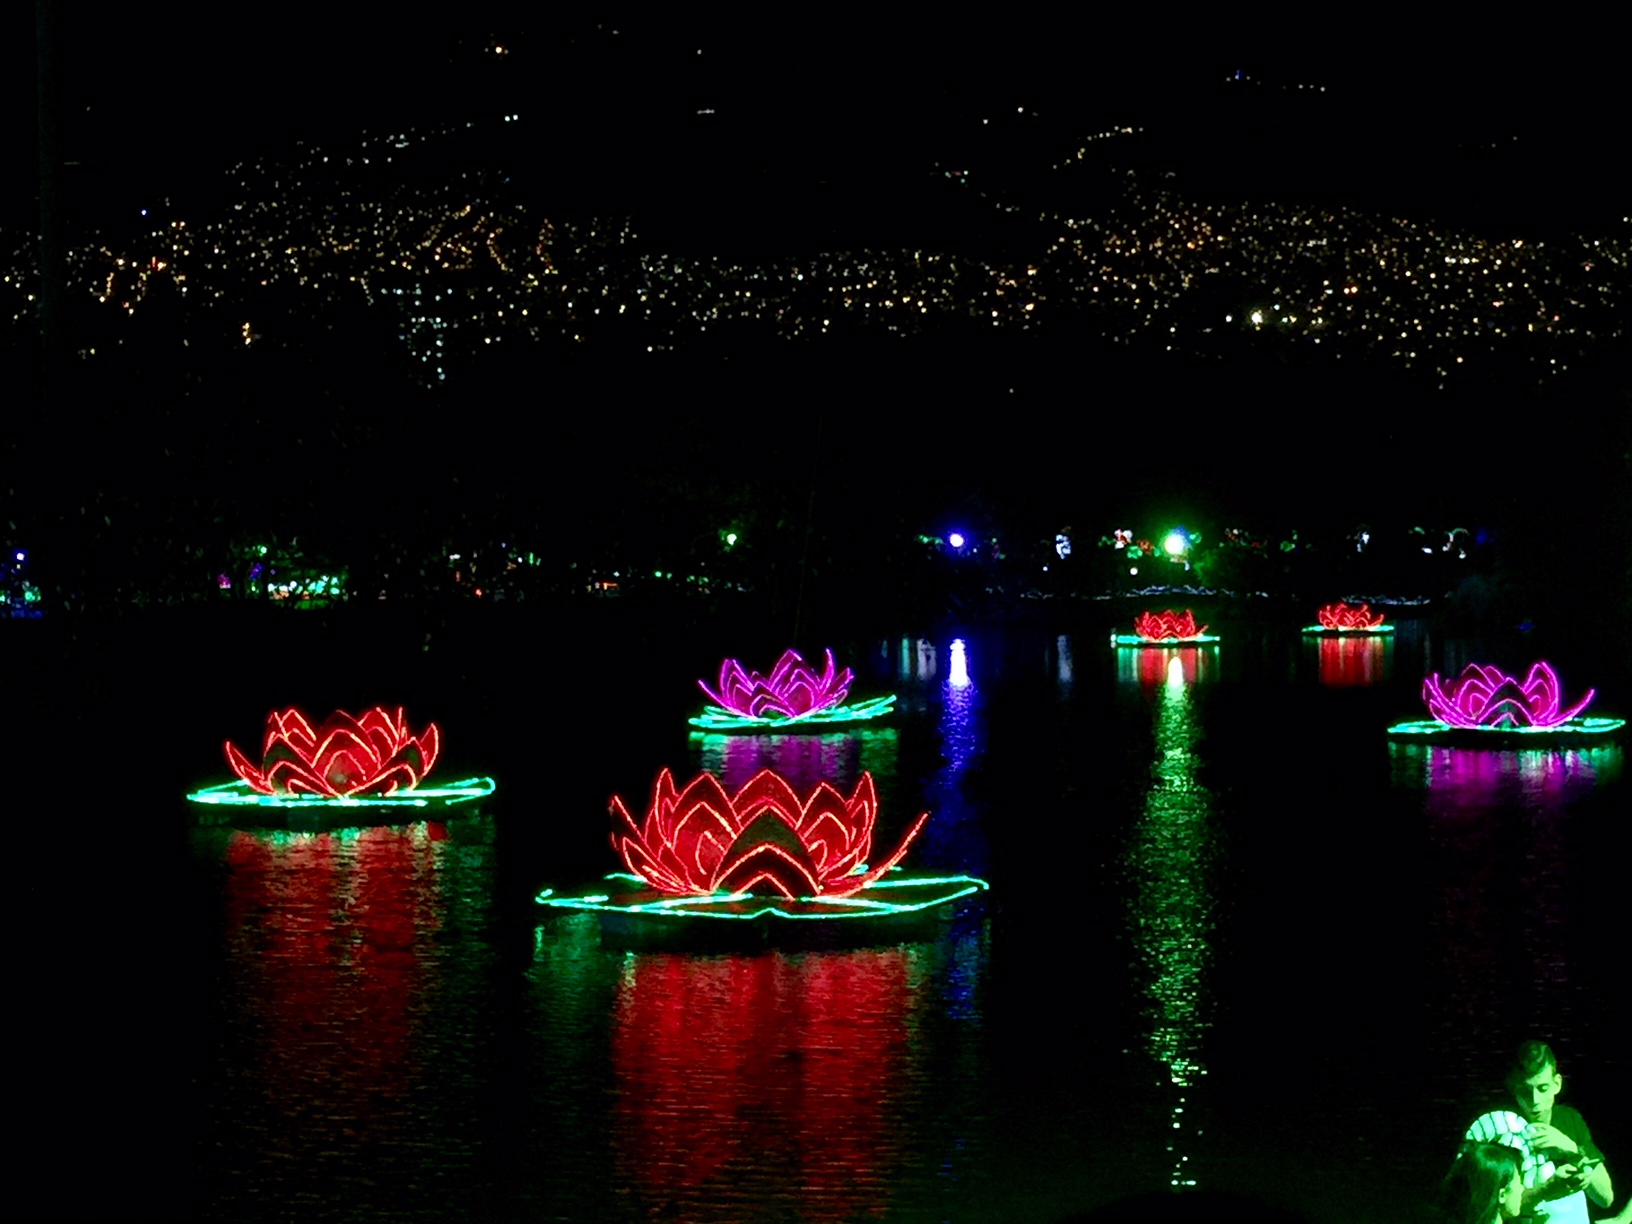 Floating lights with Medellin lights in the background